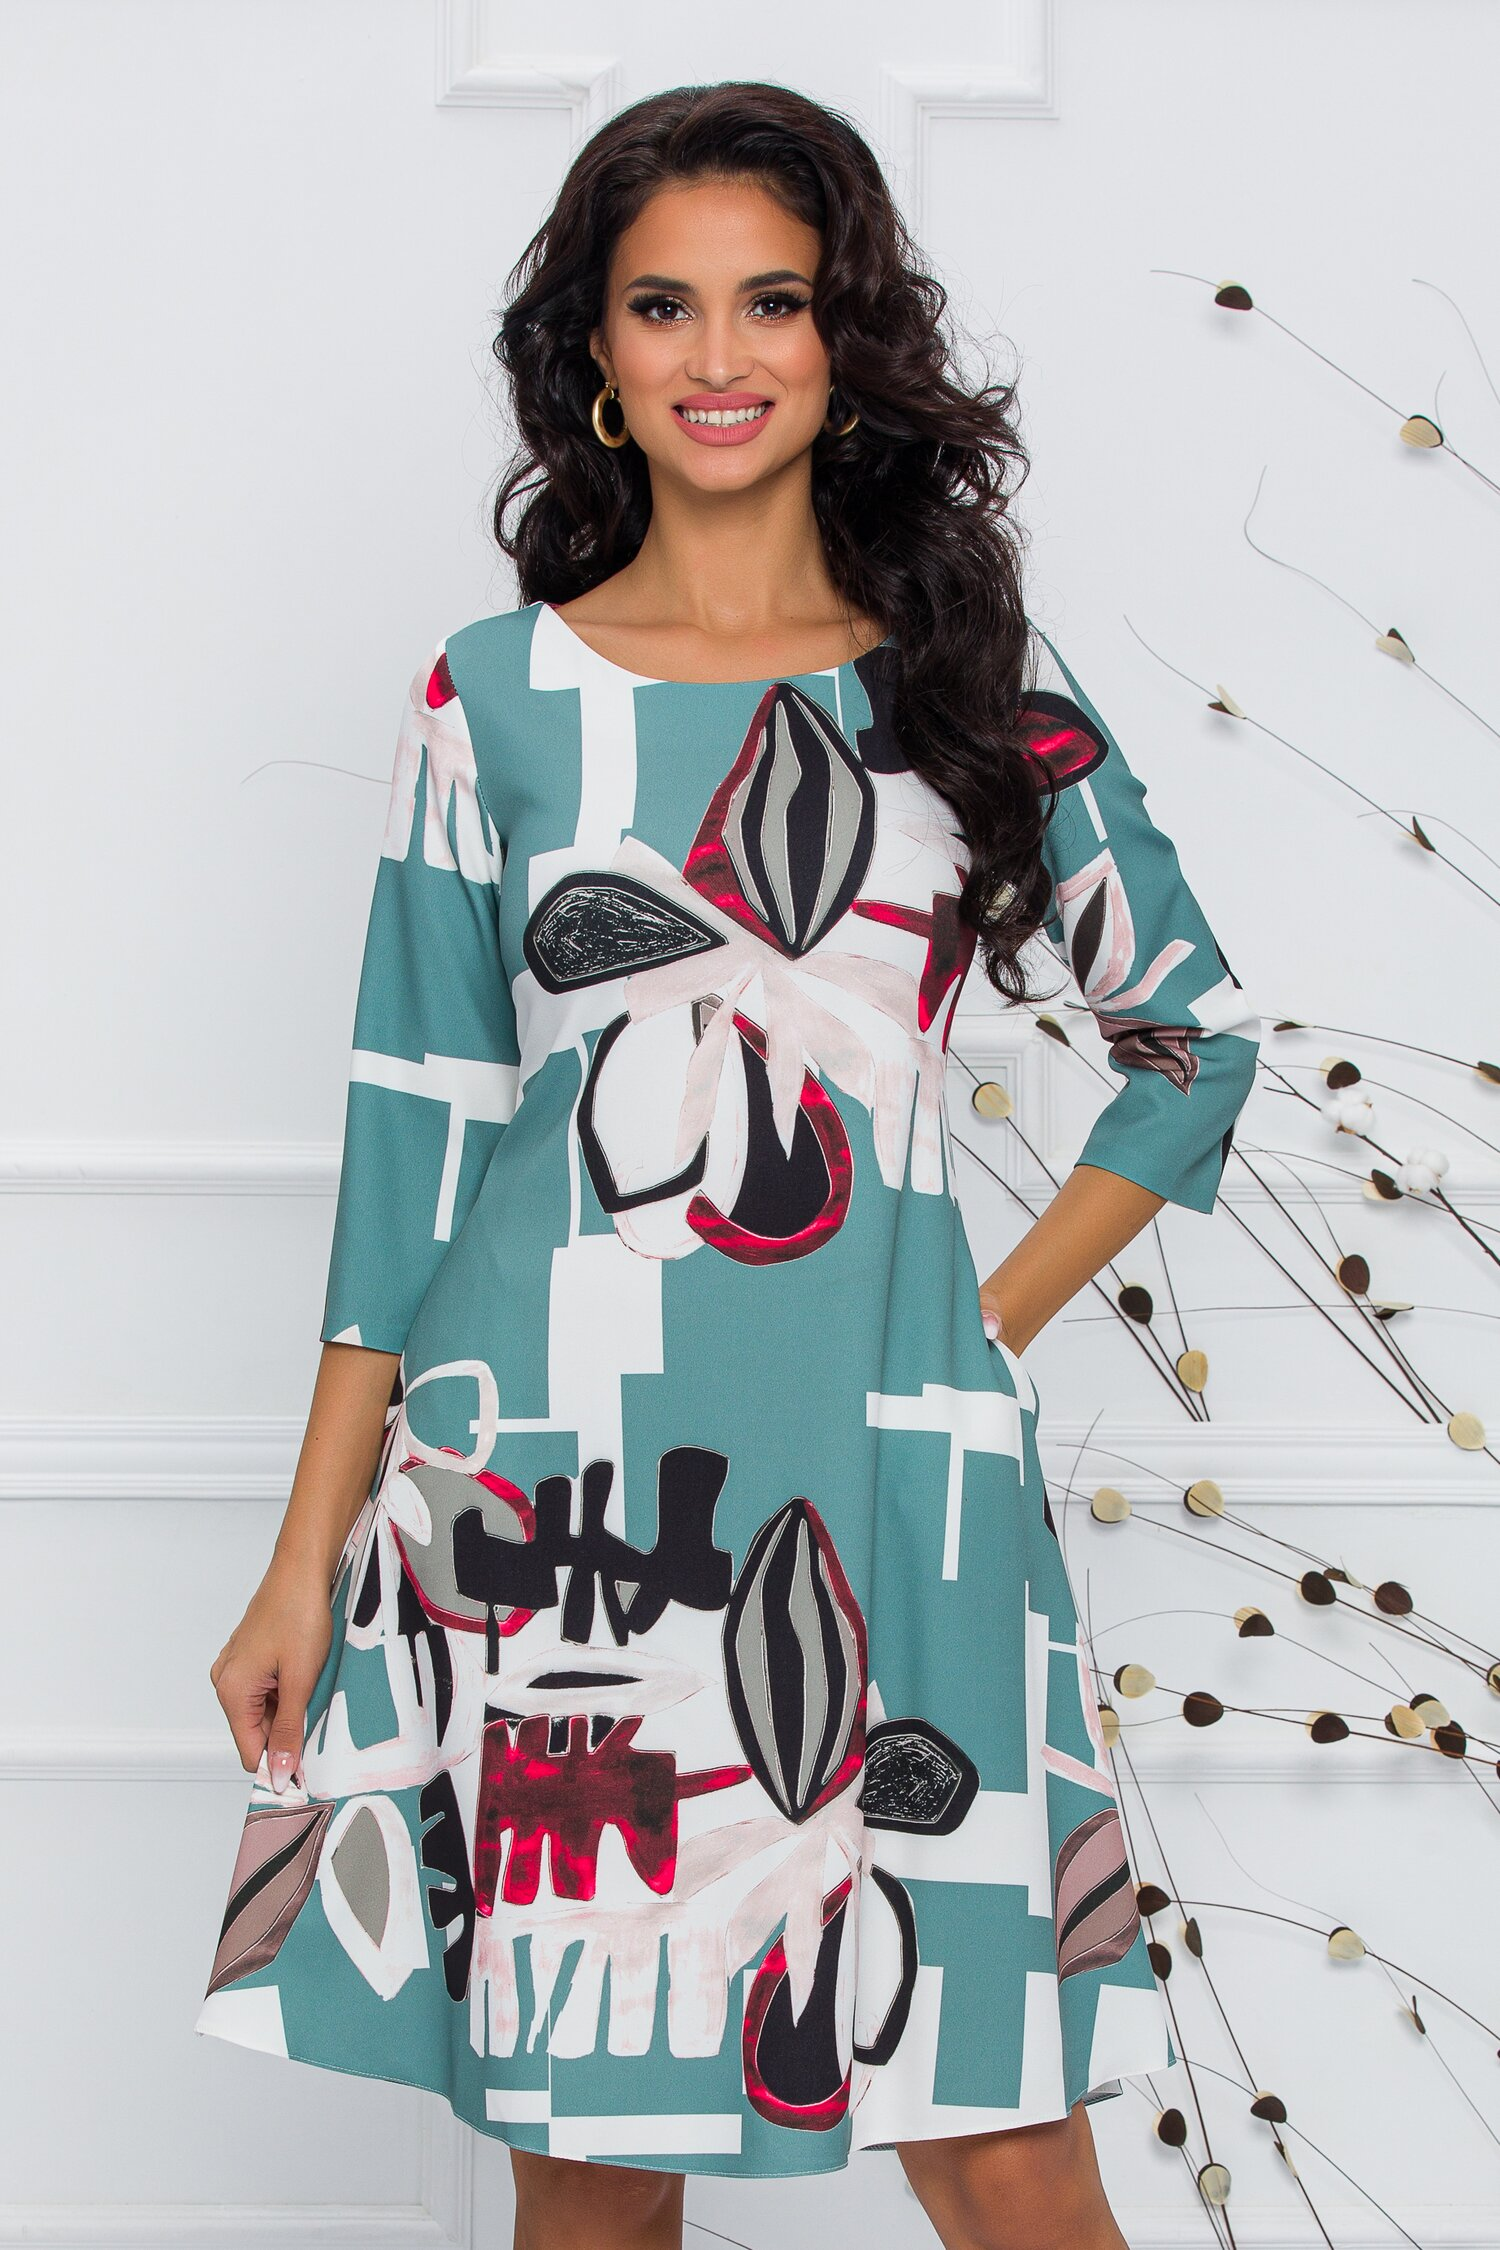 Rochie Calipso verde mint cu imprimeu abstract imagine